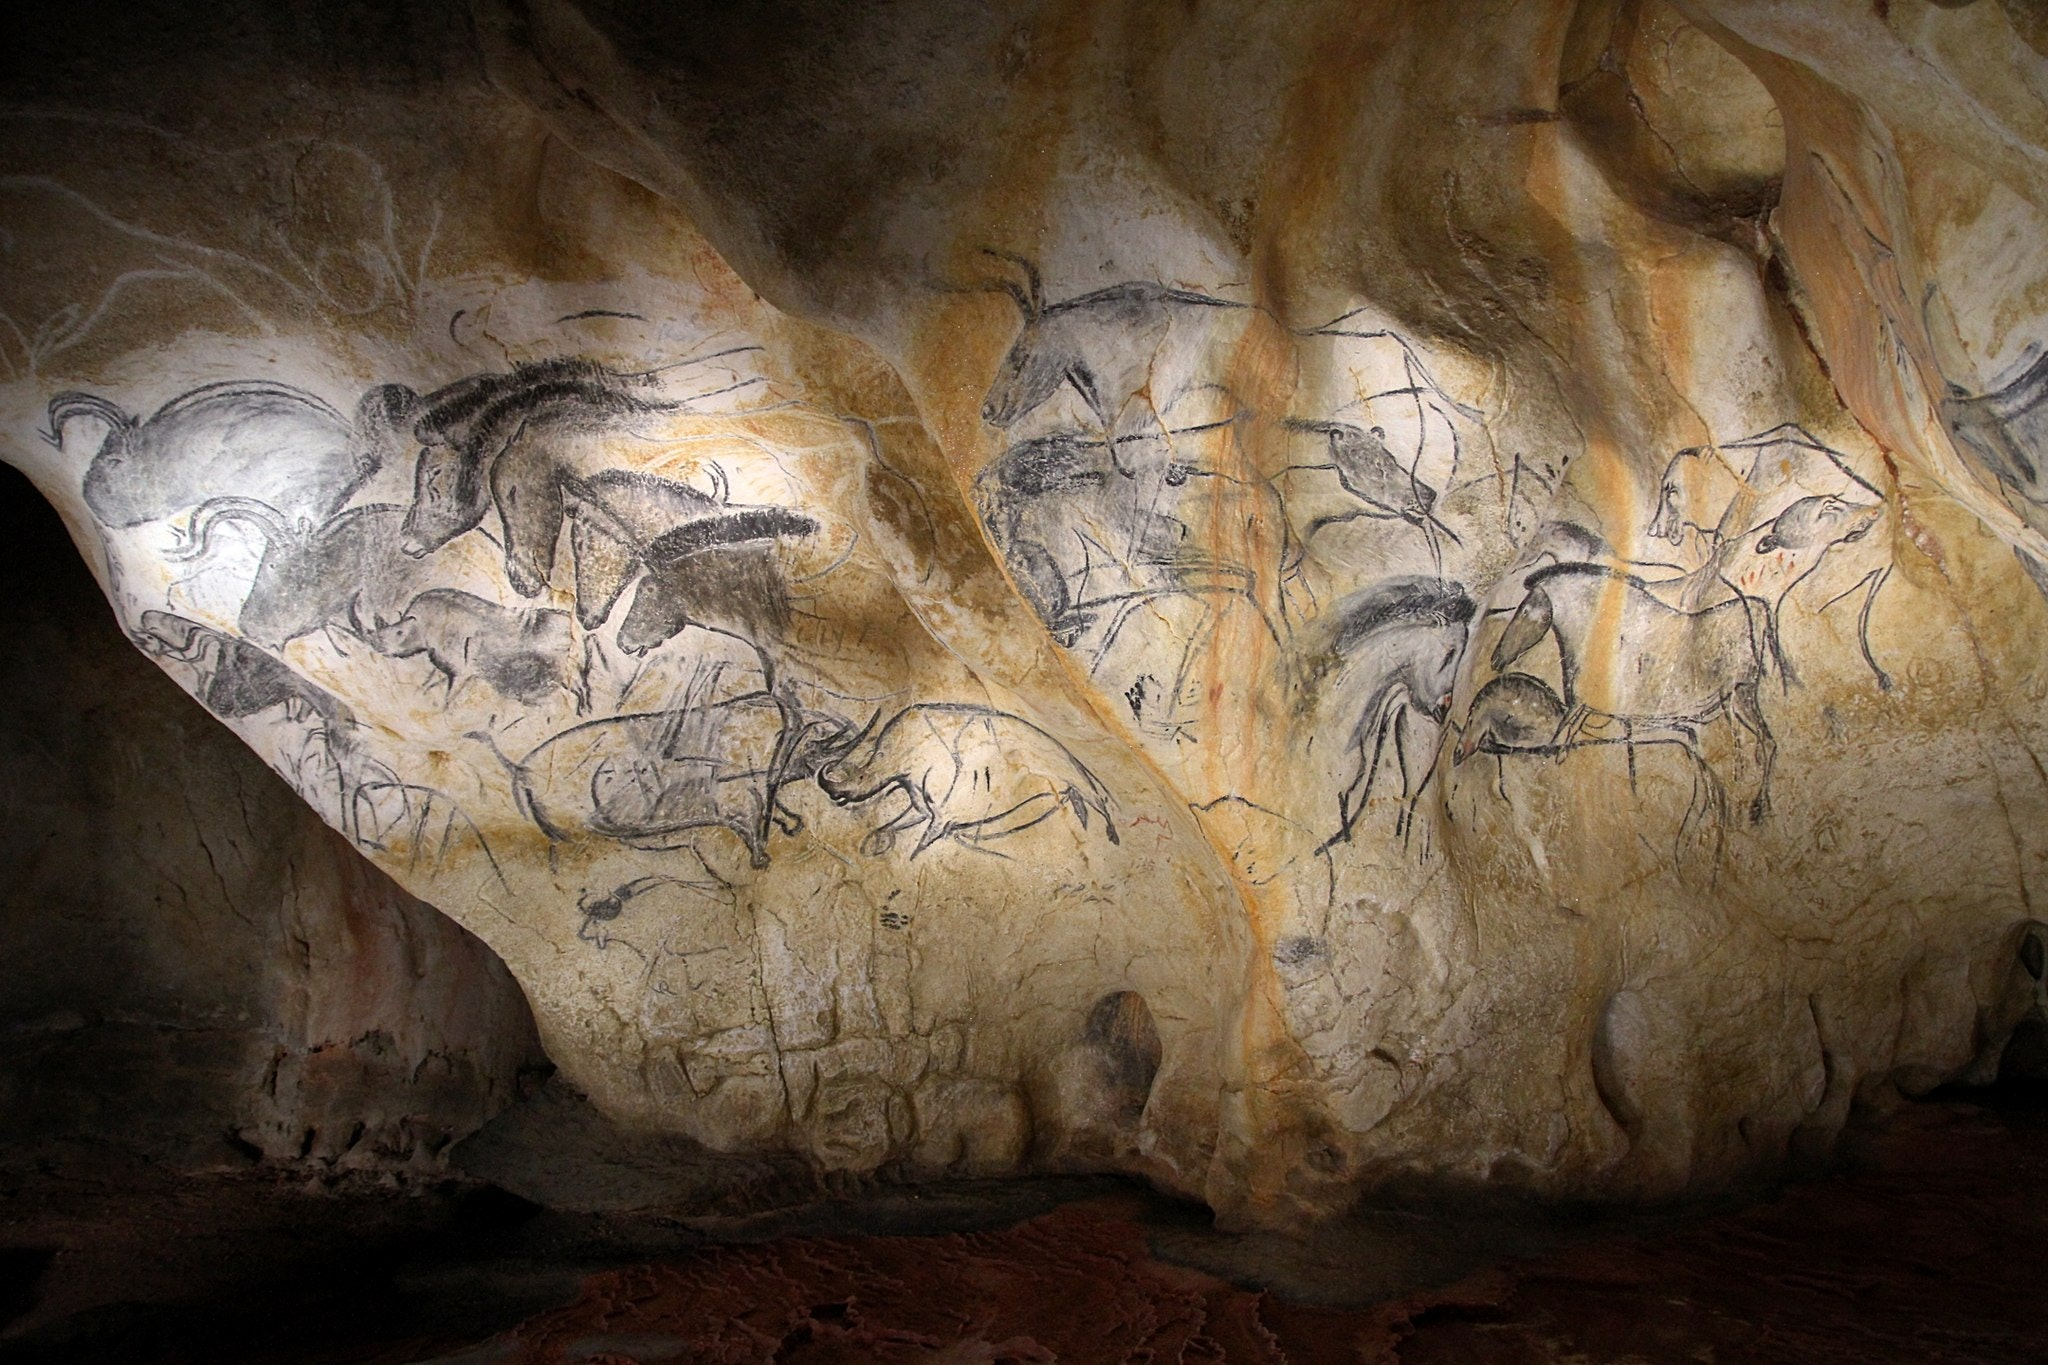 Image of Horses and other animals on the walls of the Chauvet Cave in southern France, from 30,000 years ago.